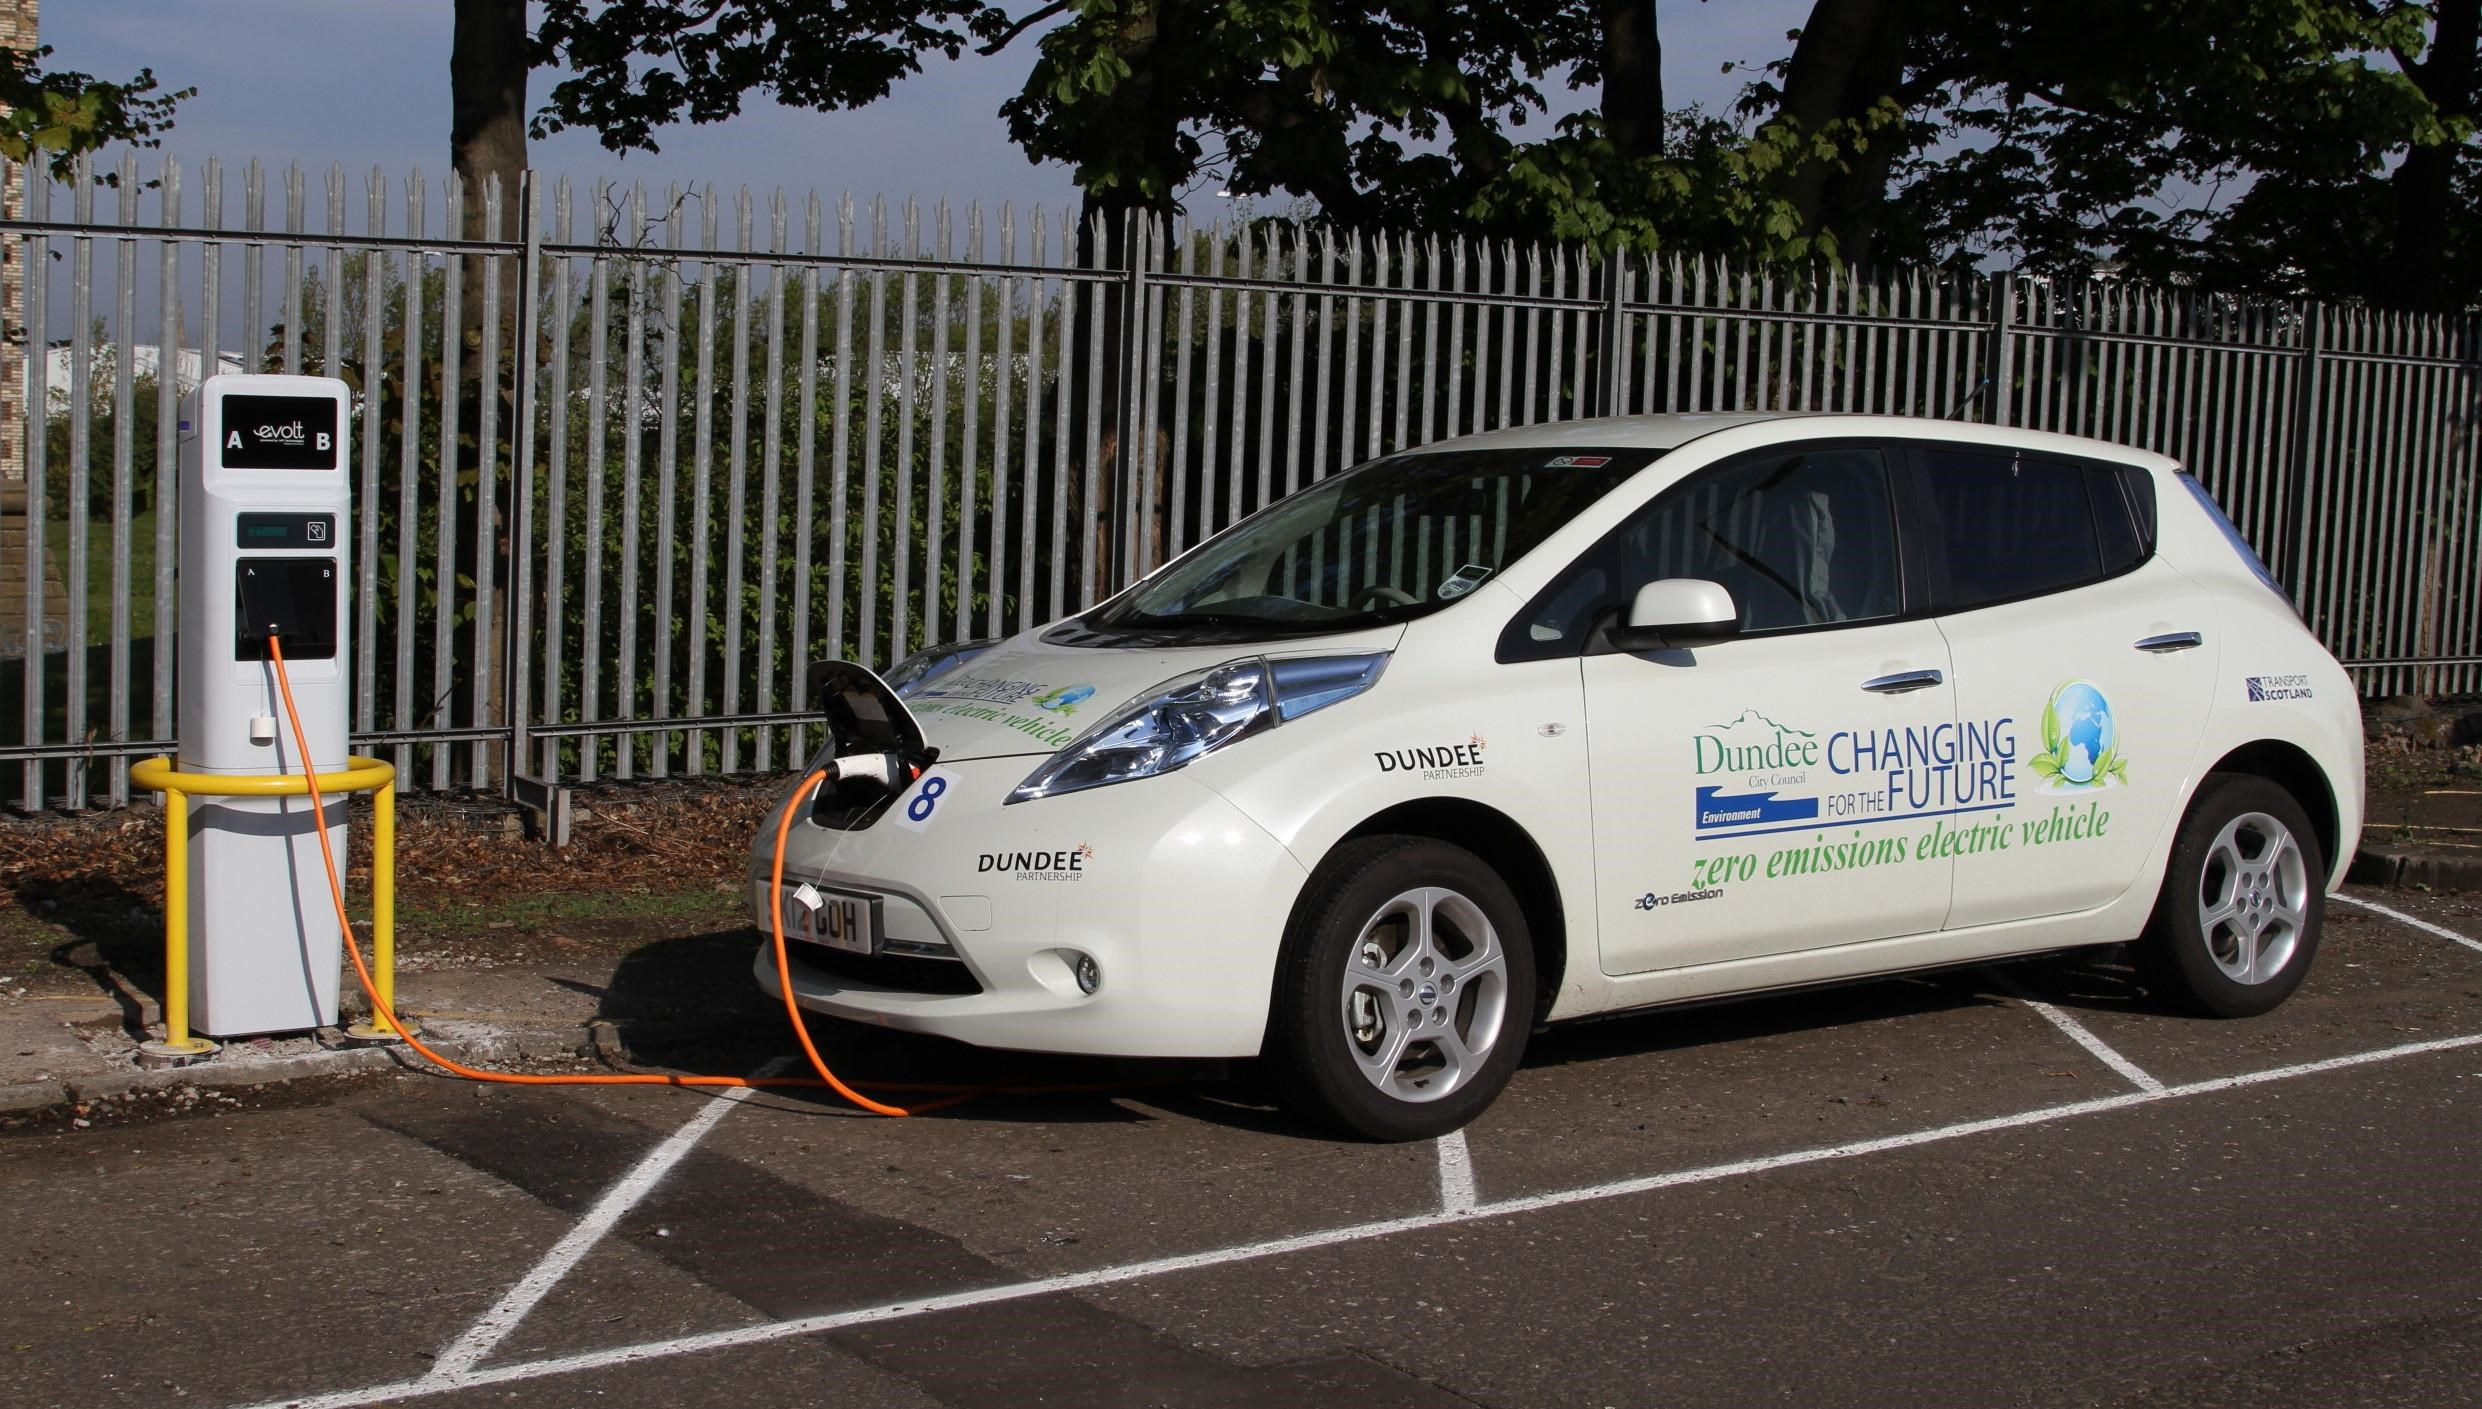 A Dundee City Council electric vehicle